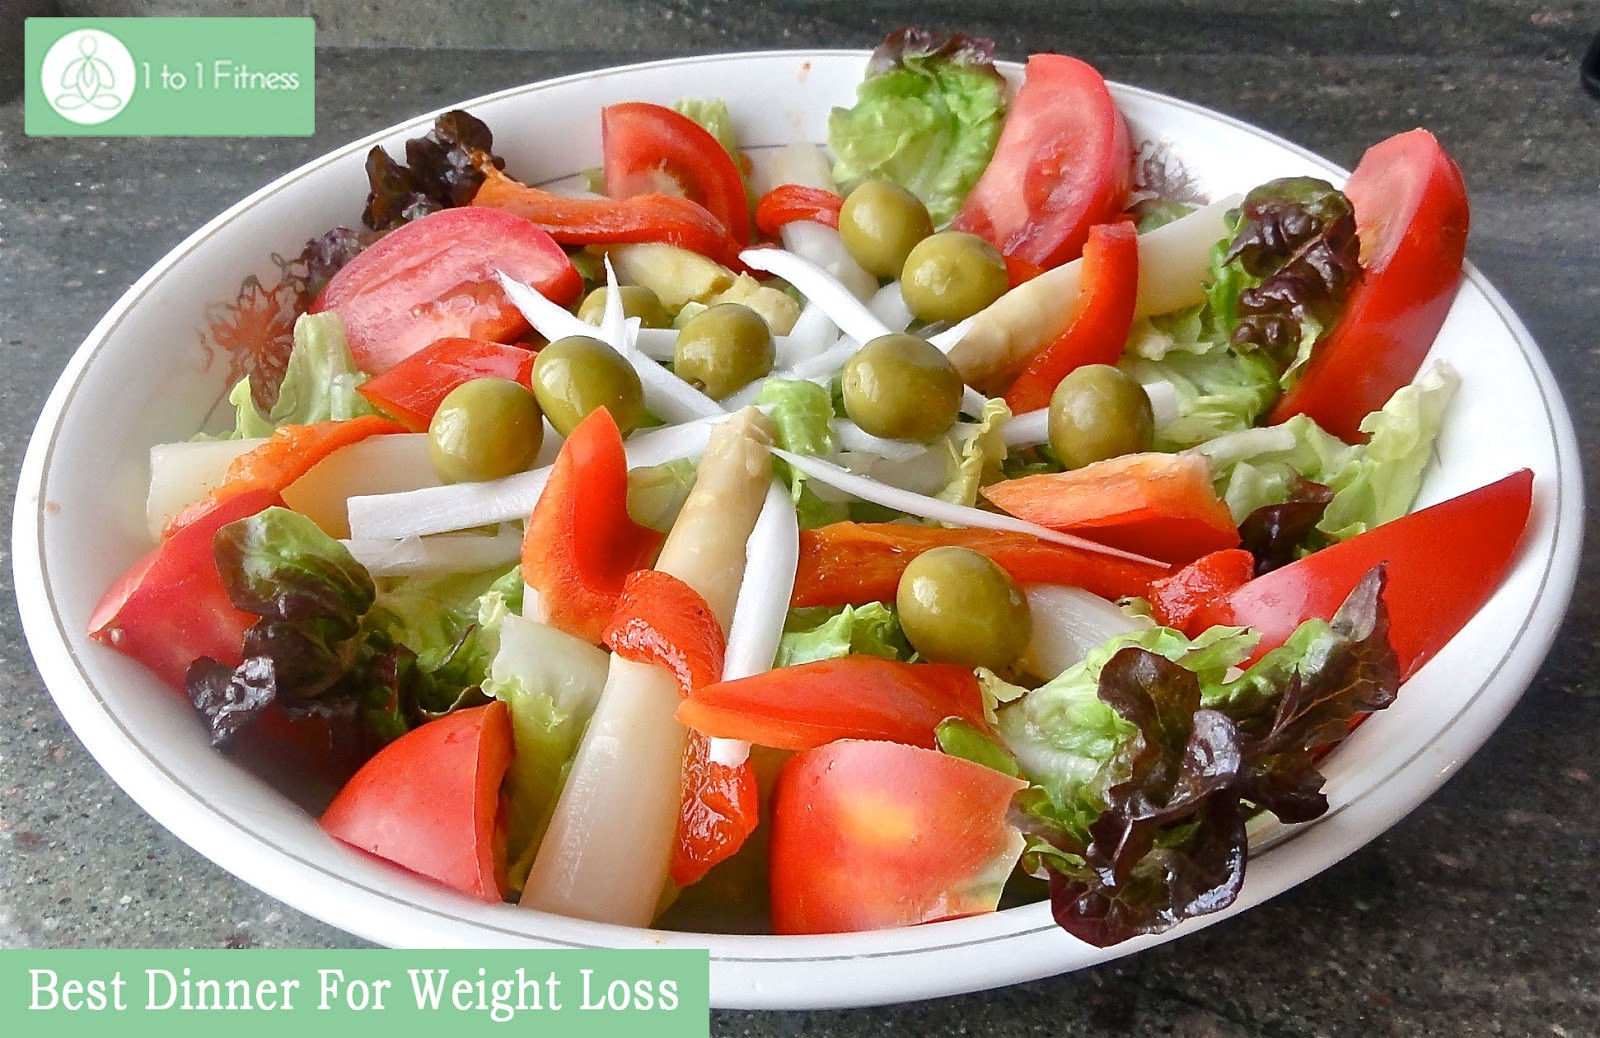 Healthy Salad Recipes Weight Loss  Which Is The Best Diet Plan For Weight Loss 1 to 1 Fitness